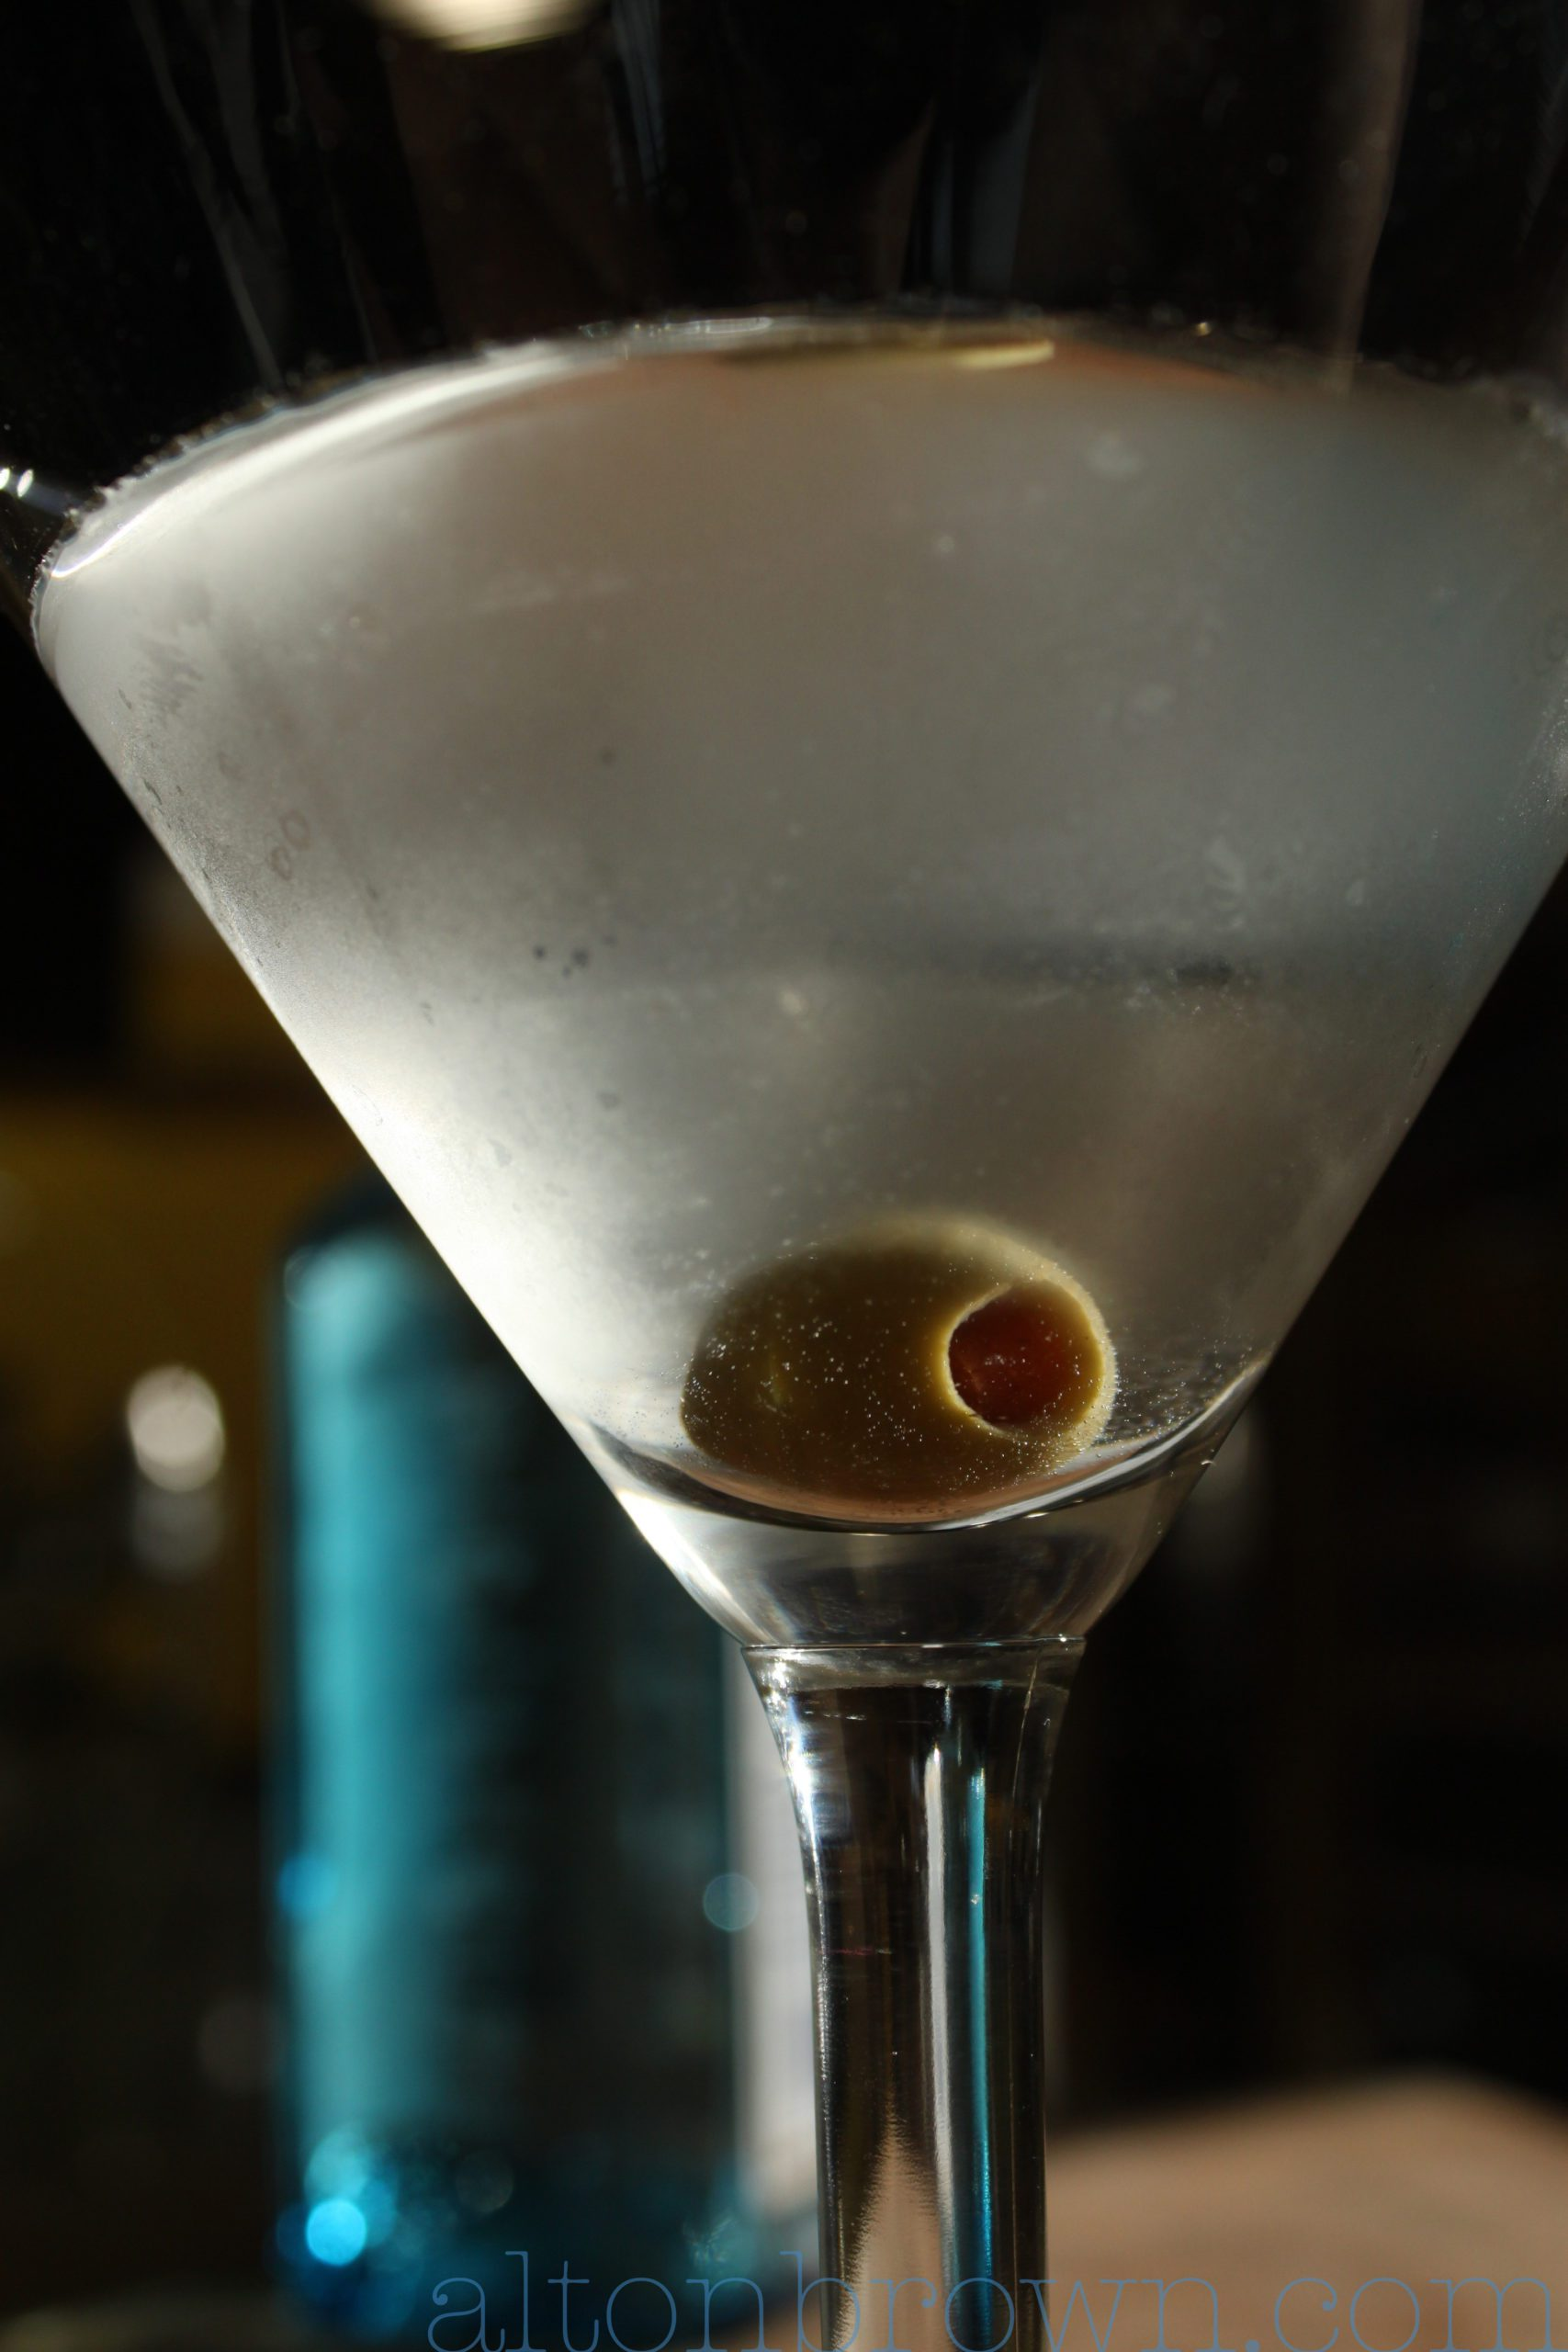 Alton Brown's classic martini in a martini glass with a green olive.